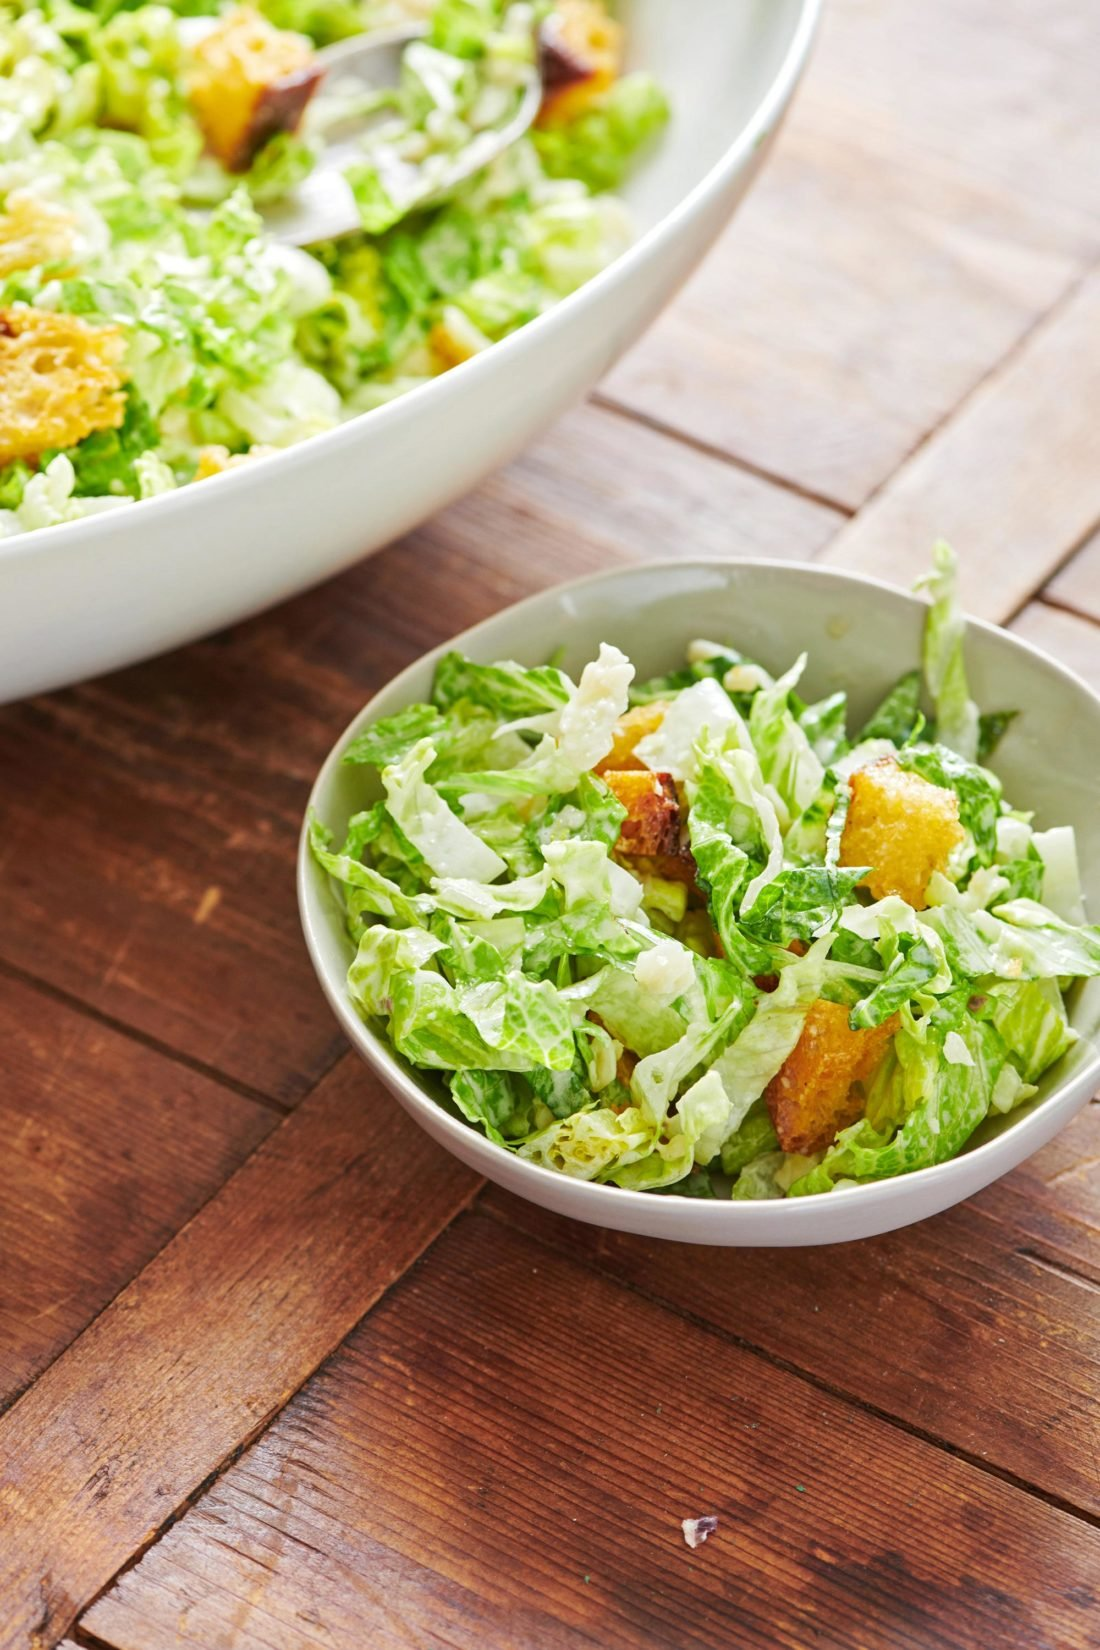 Caesar Salad with Garlicky Croutons